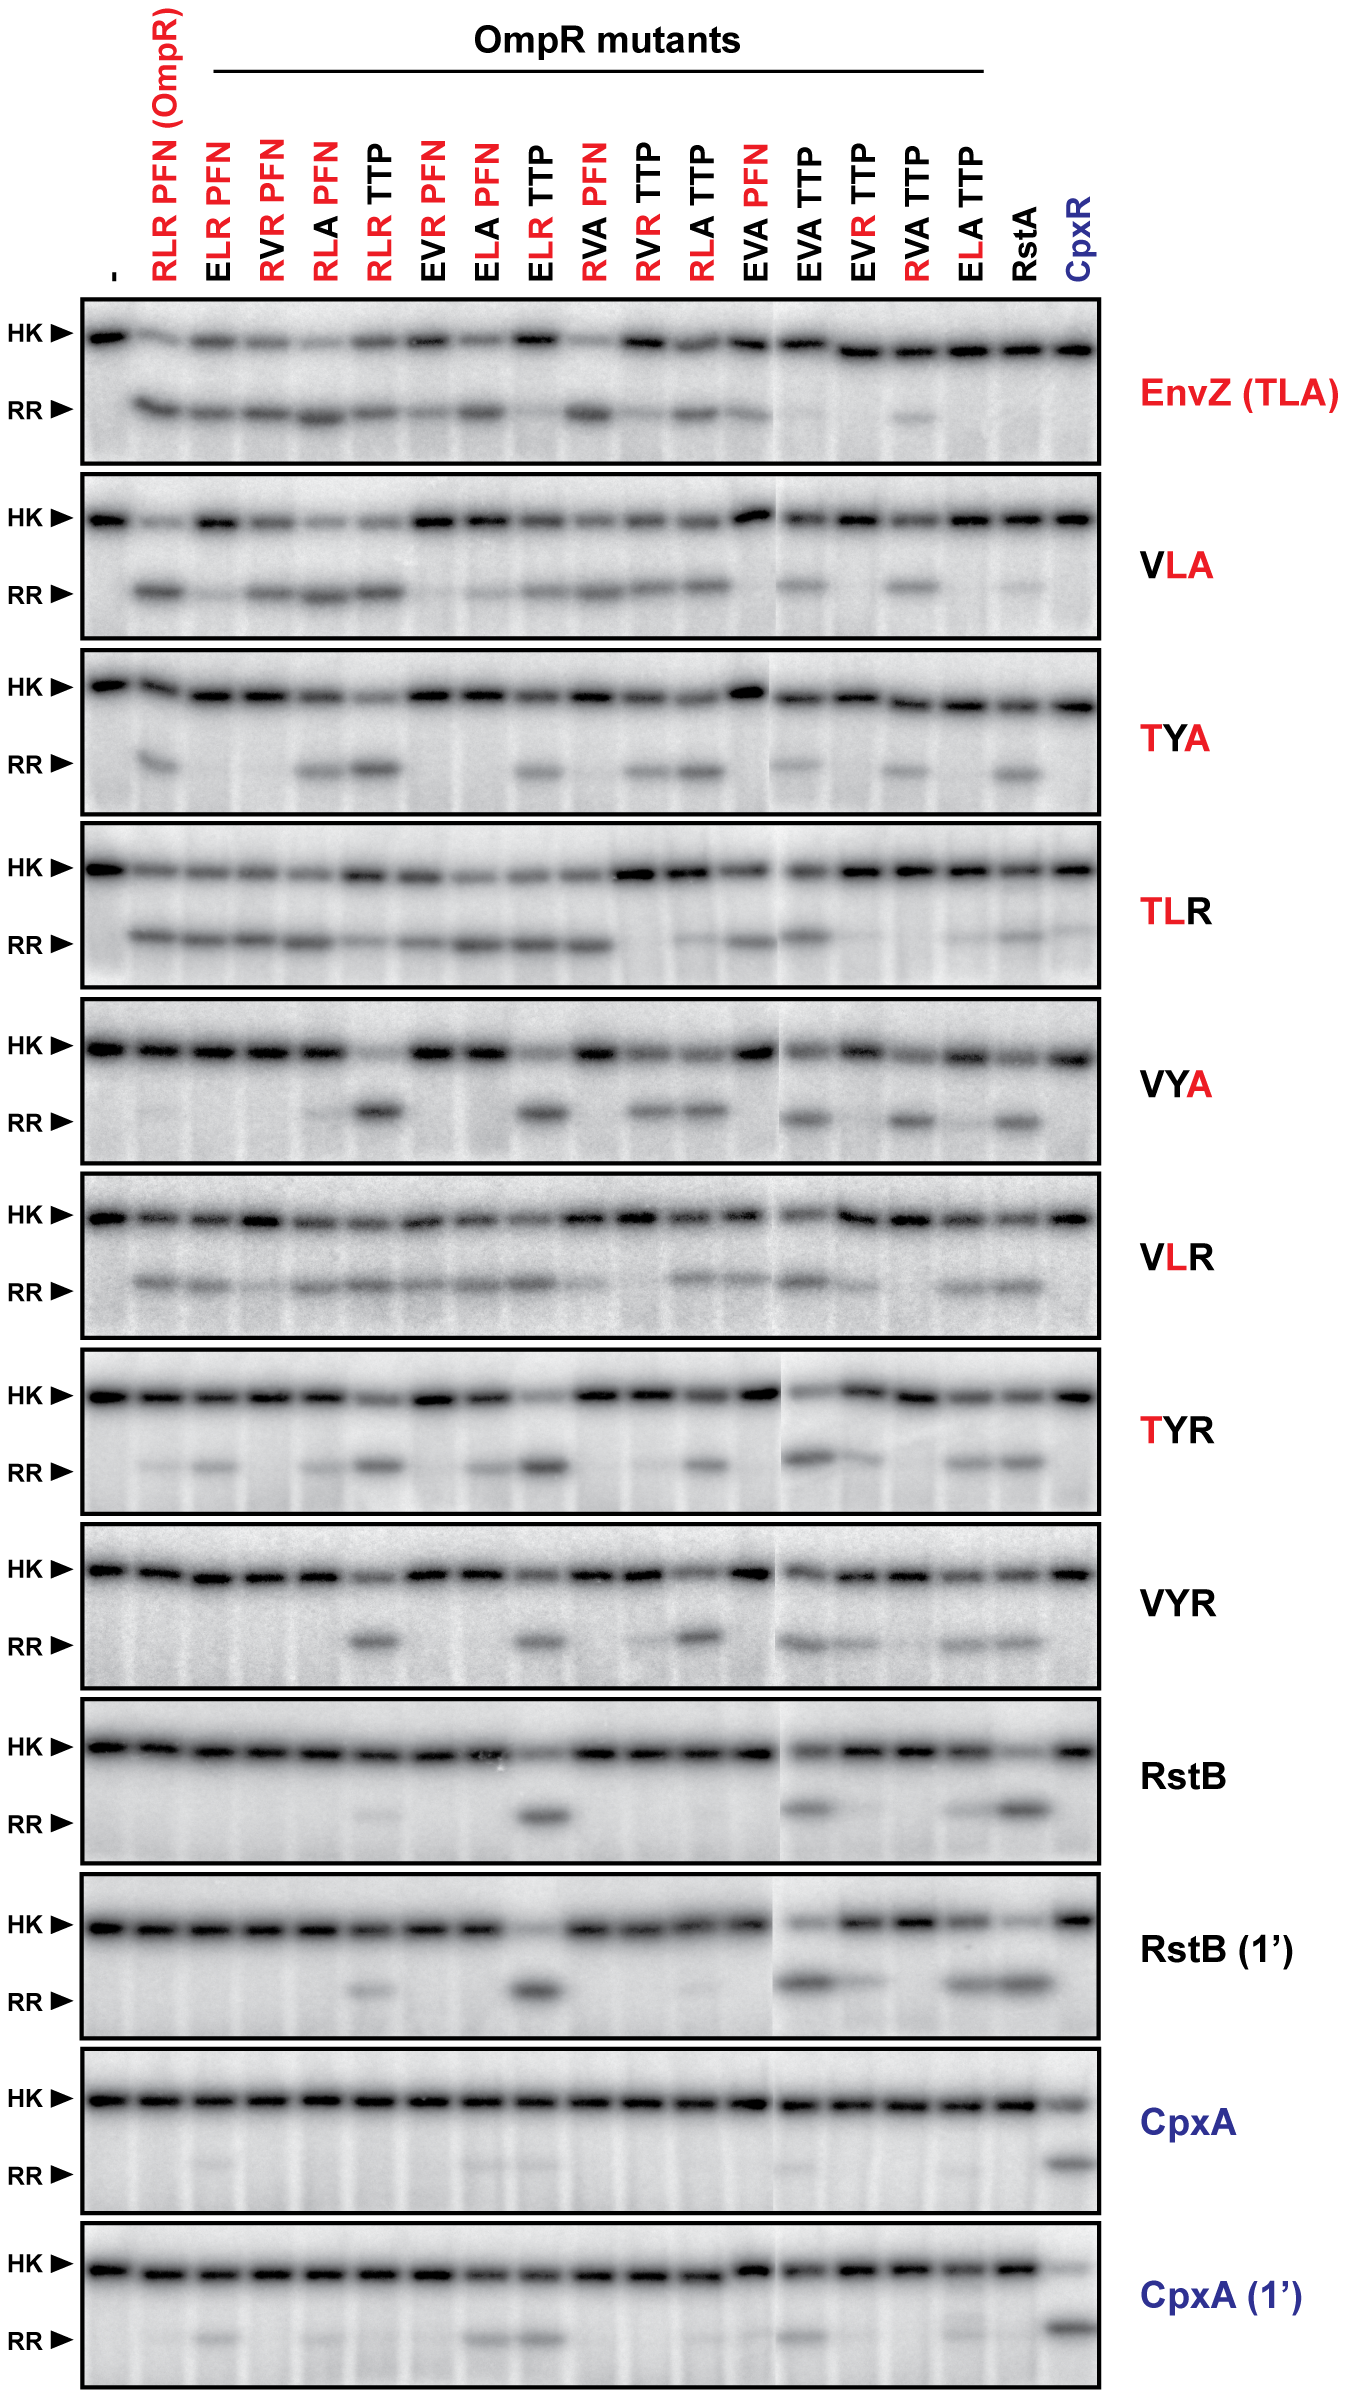 Complete trajectory-scanning mutagenesis of EnvZ and OmpR.